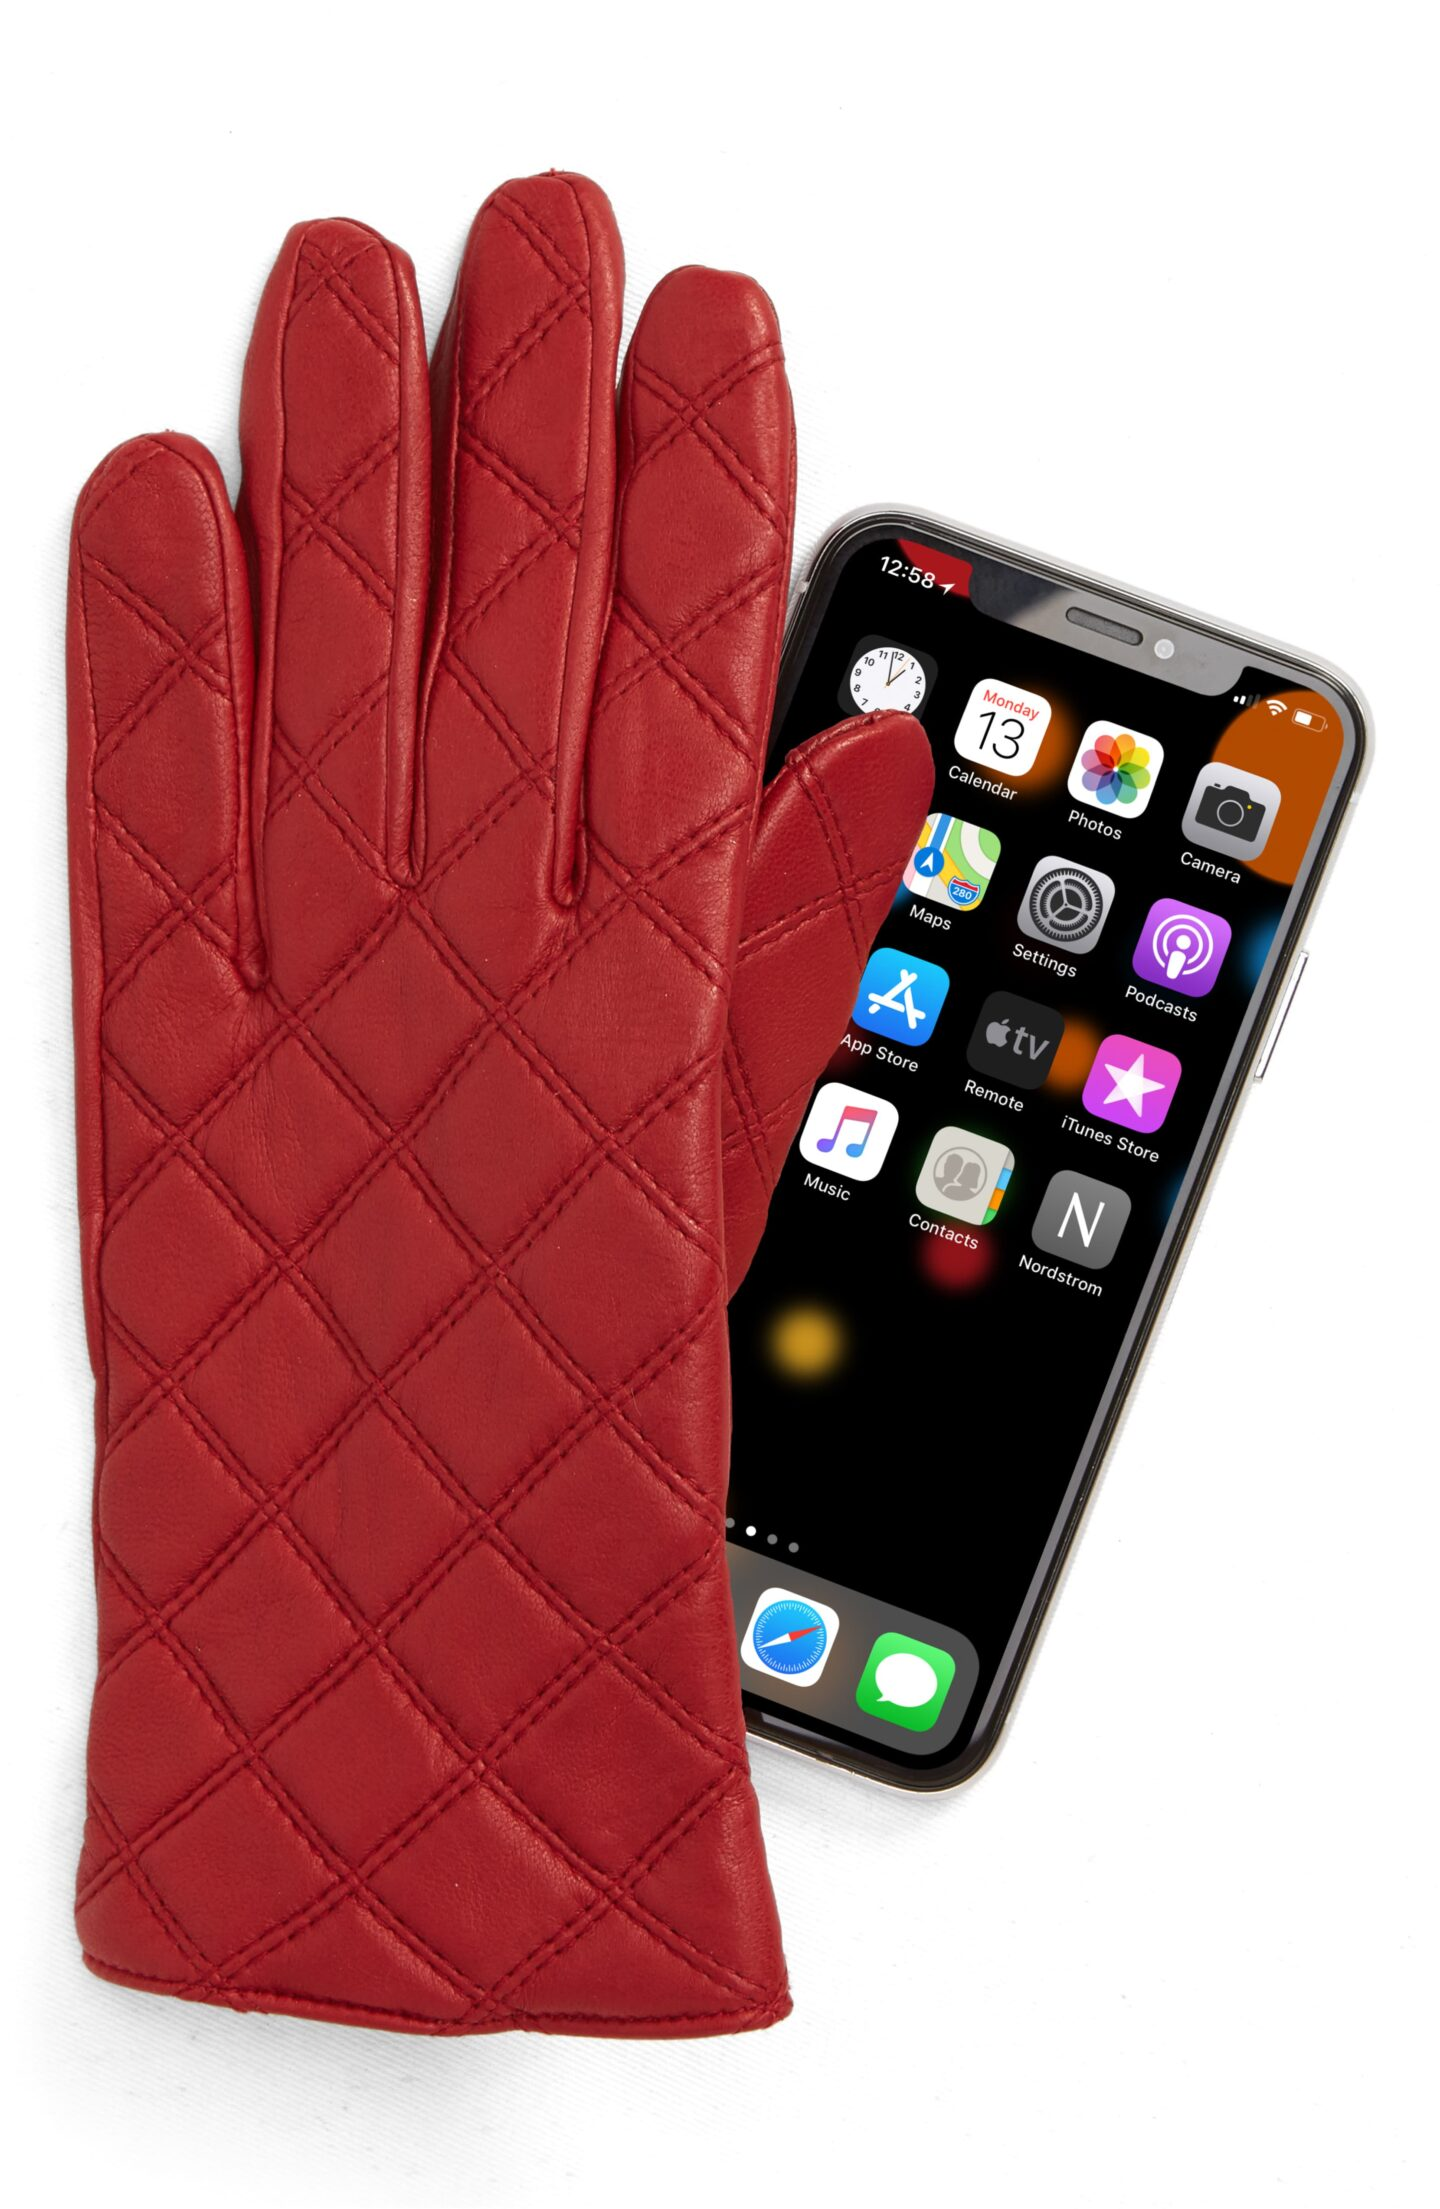 Touchscreen Gloves Keep You Stylish And Toasty While Texting